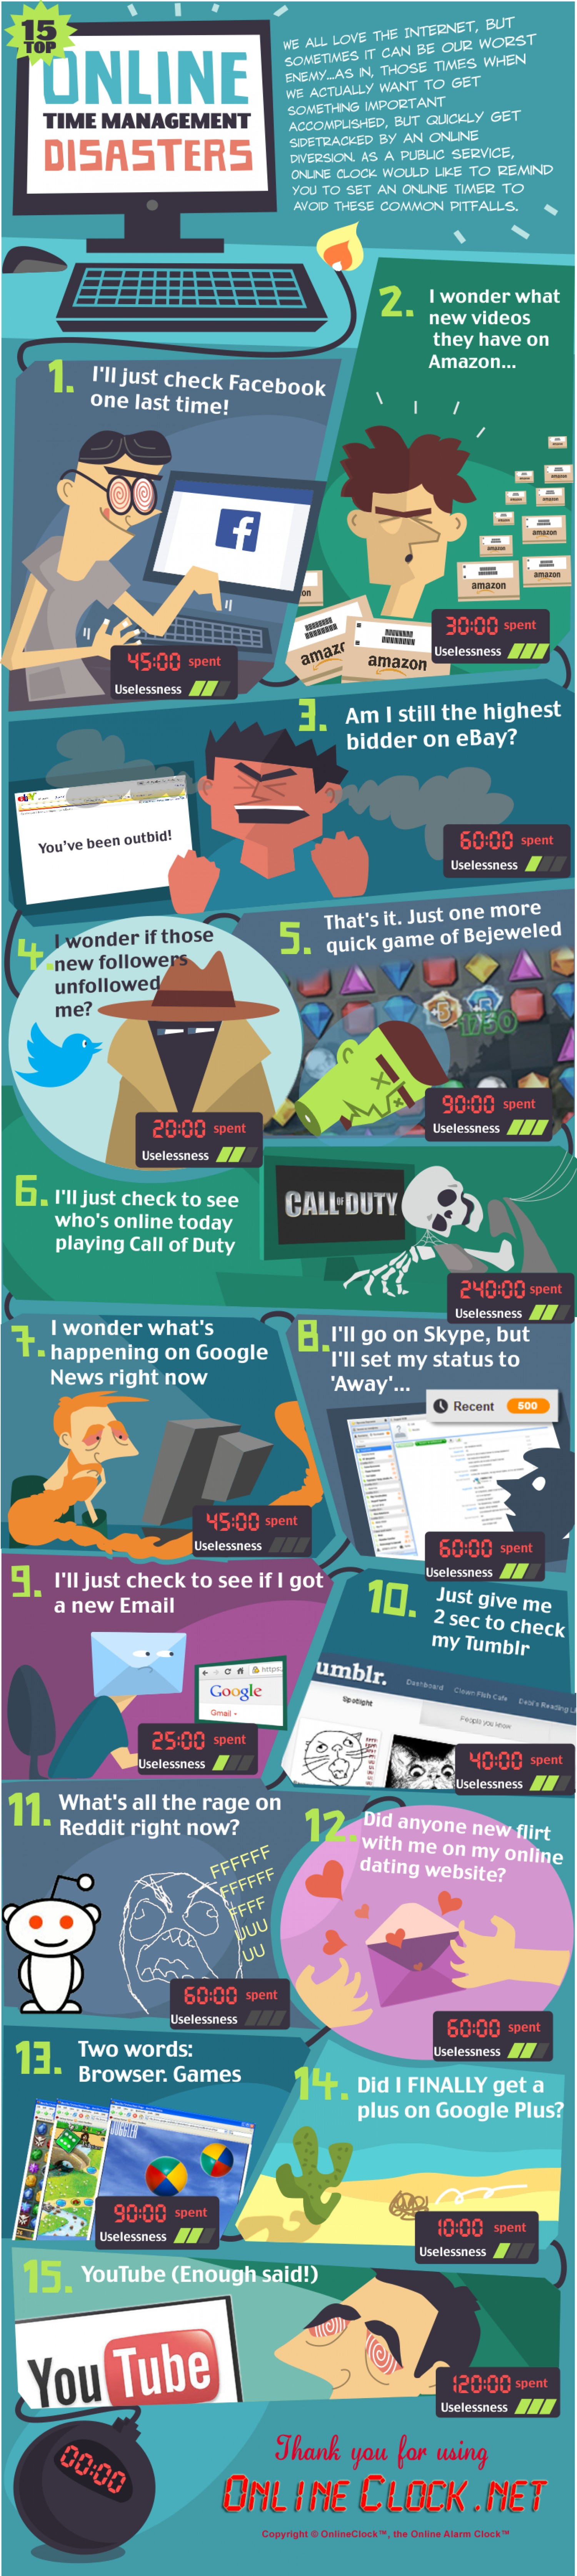 Online Time Management Disasters